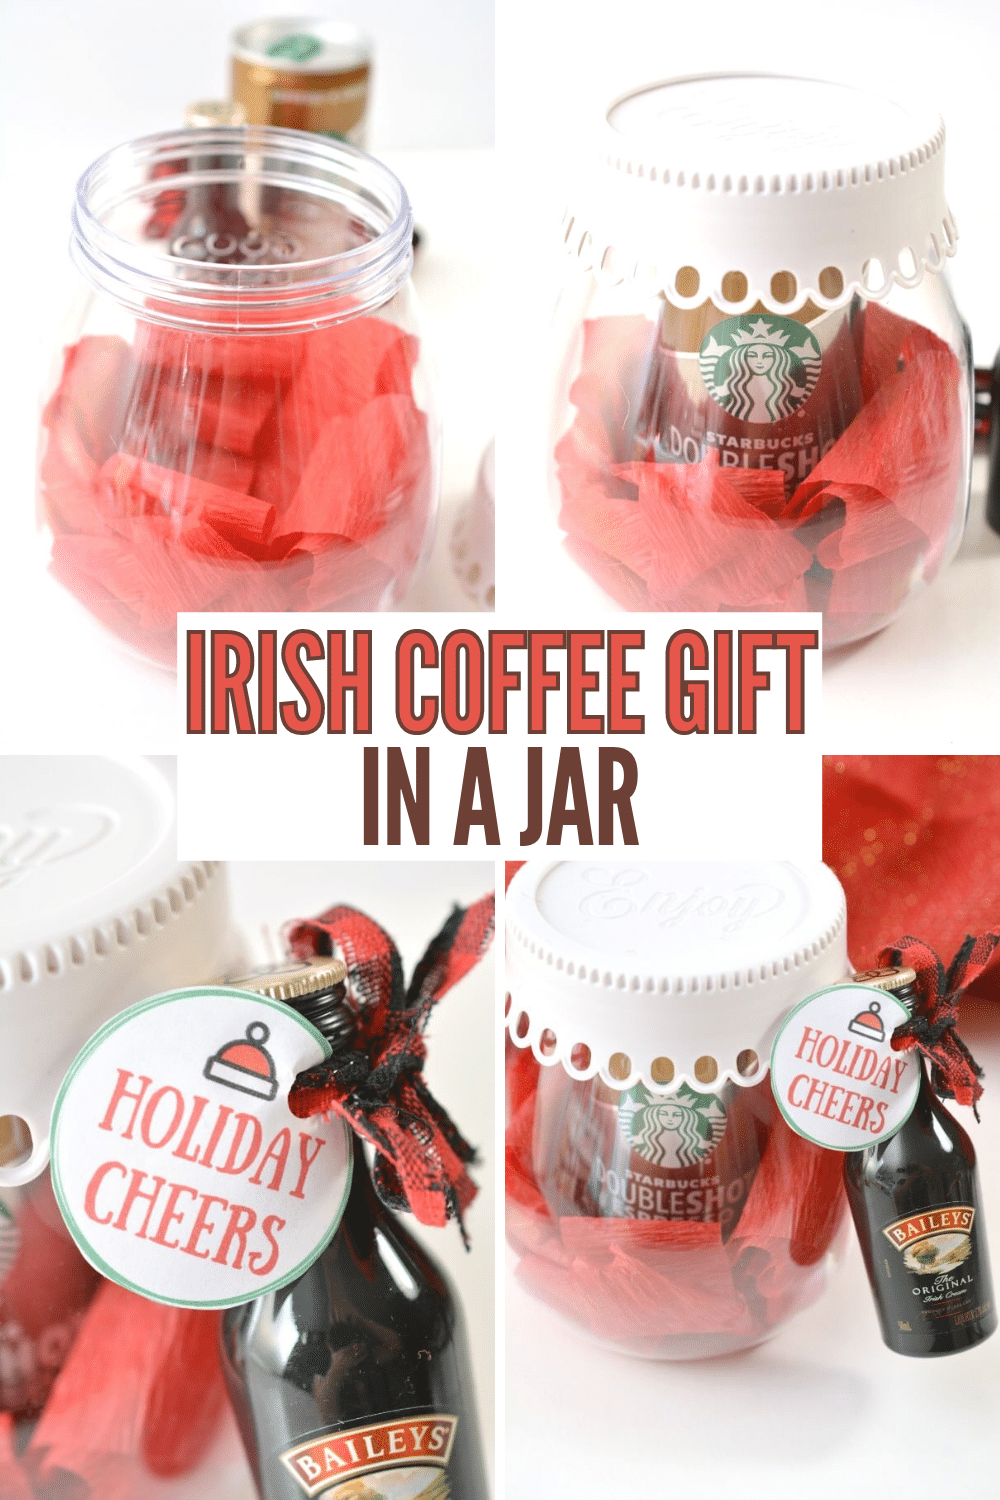 This Irish Coffee Gift in a Jar is such a cute gift idea and SO EASY to put together! #easygiftidea #coffeegifts via @wondermomwannab